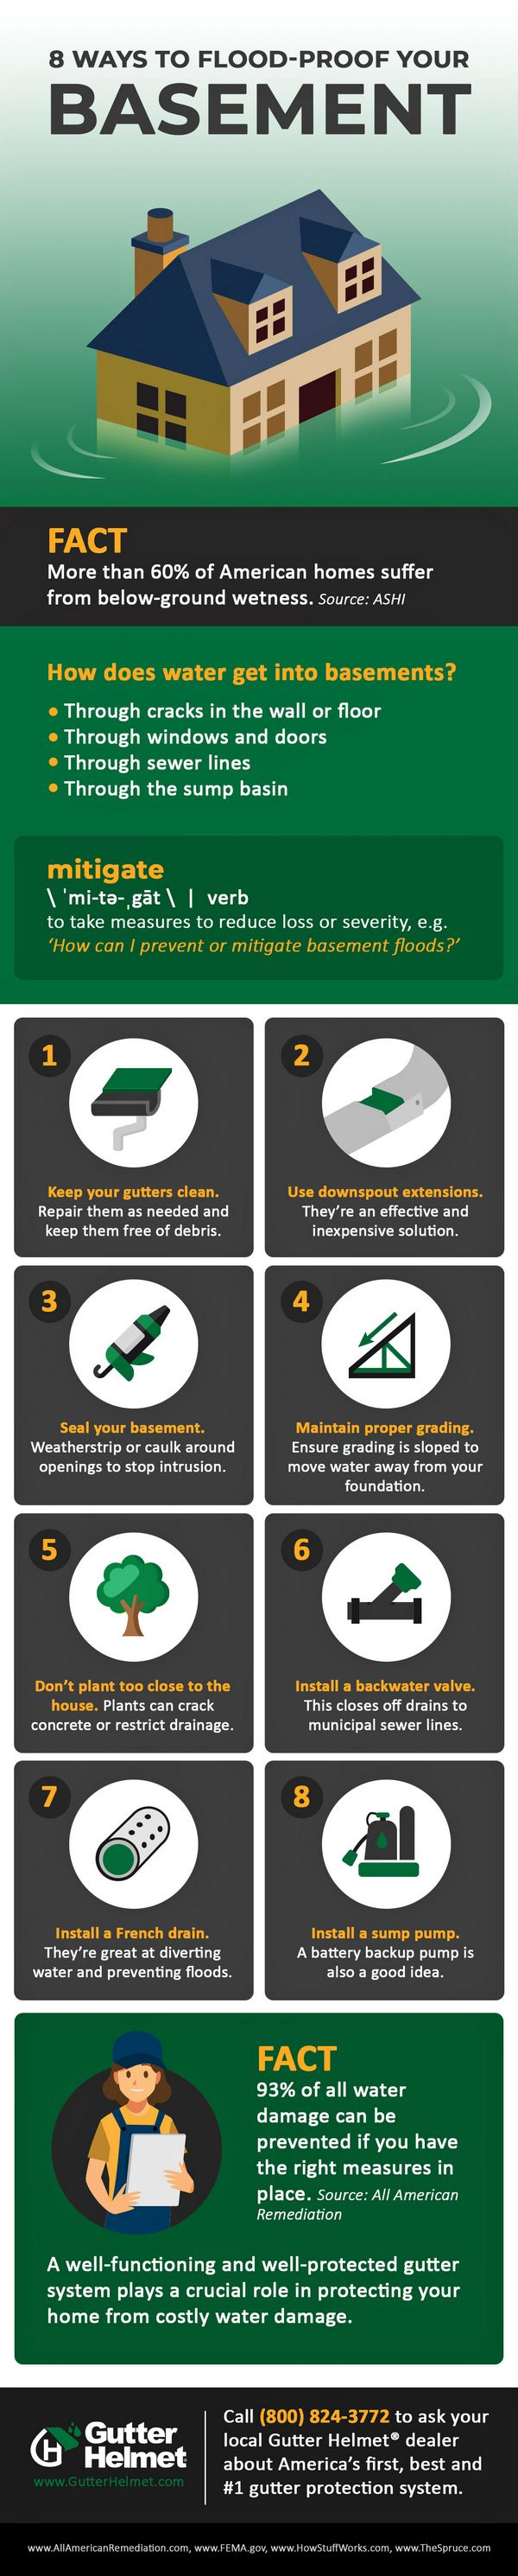 Infographic: 8 Tips For Flood-proofing A Basement